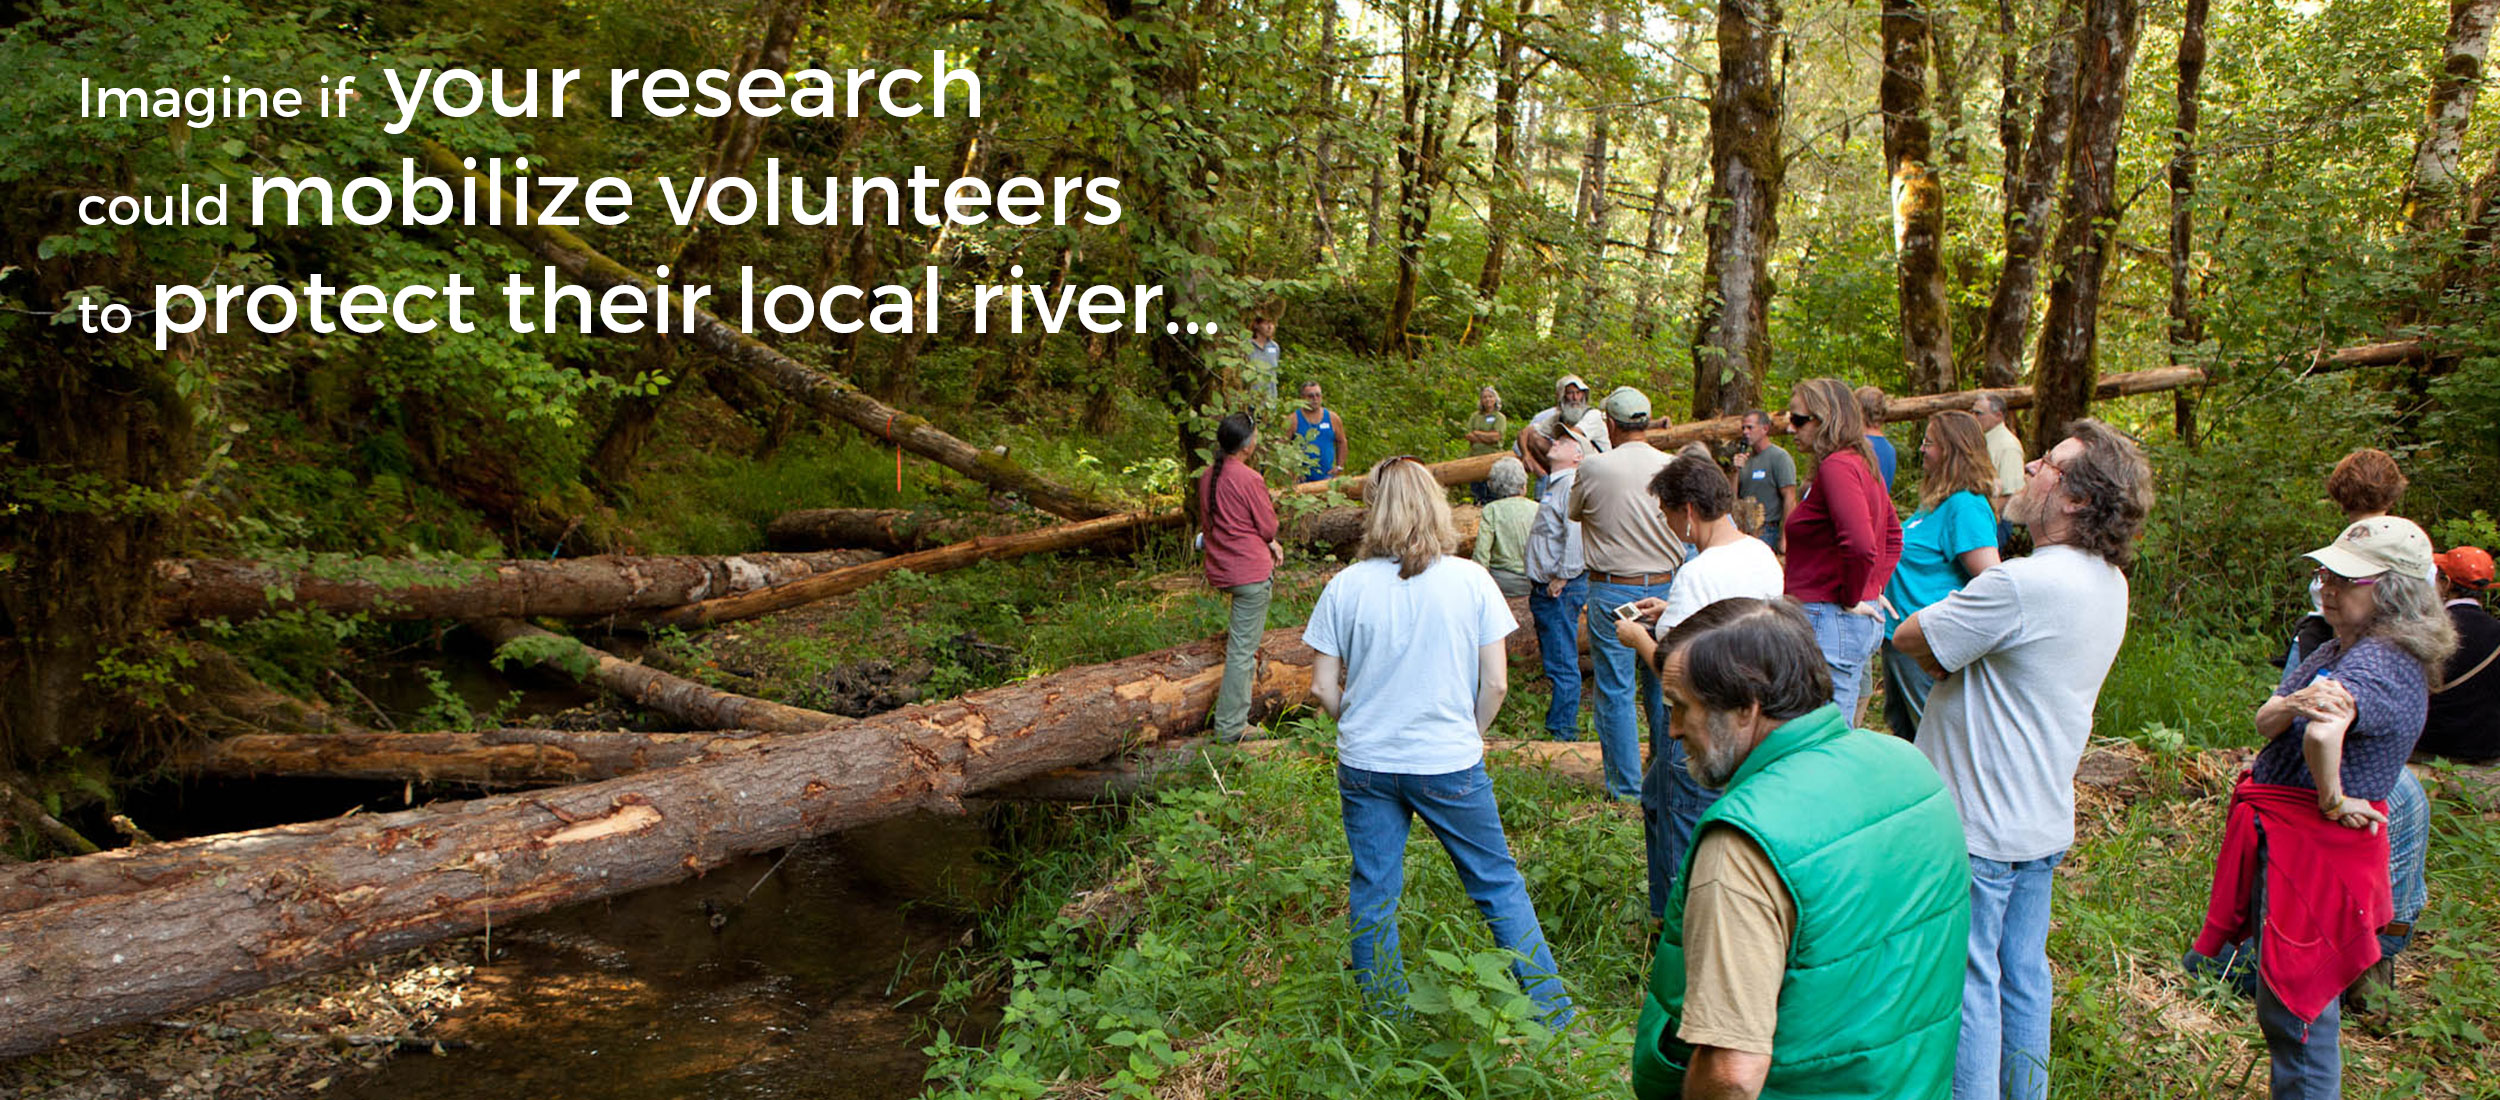 Imagine if your research could mobilize volunteers to protect their local river...